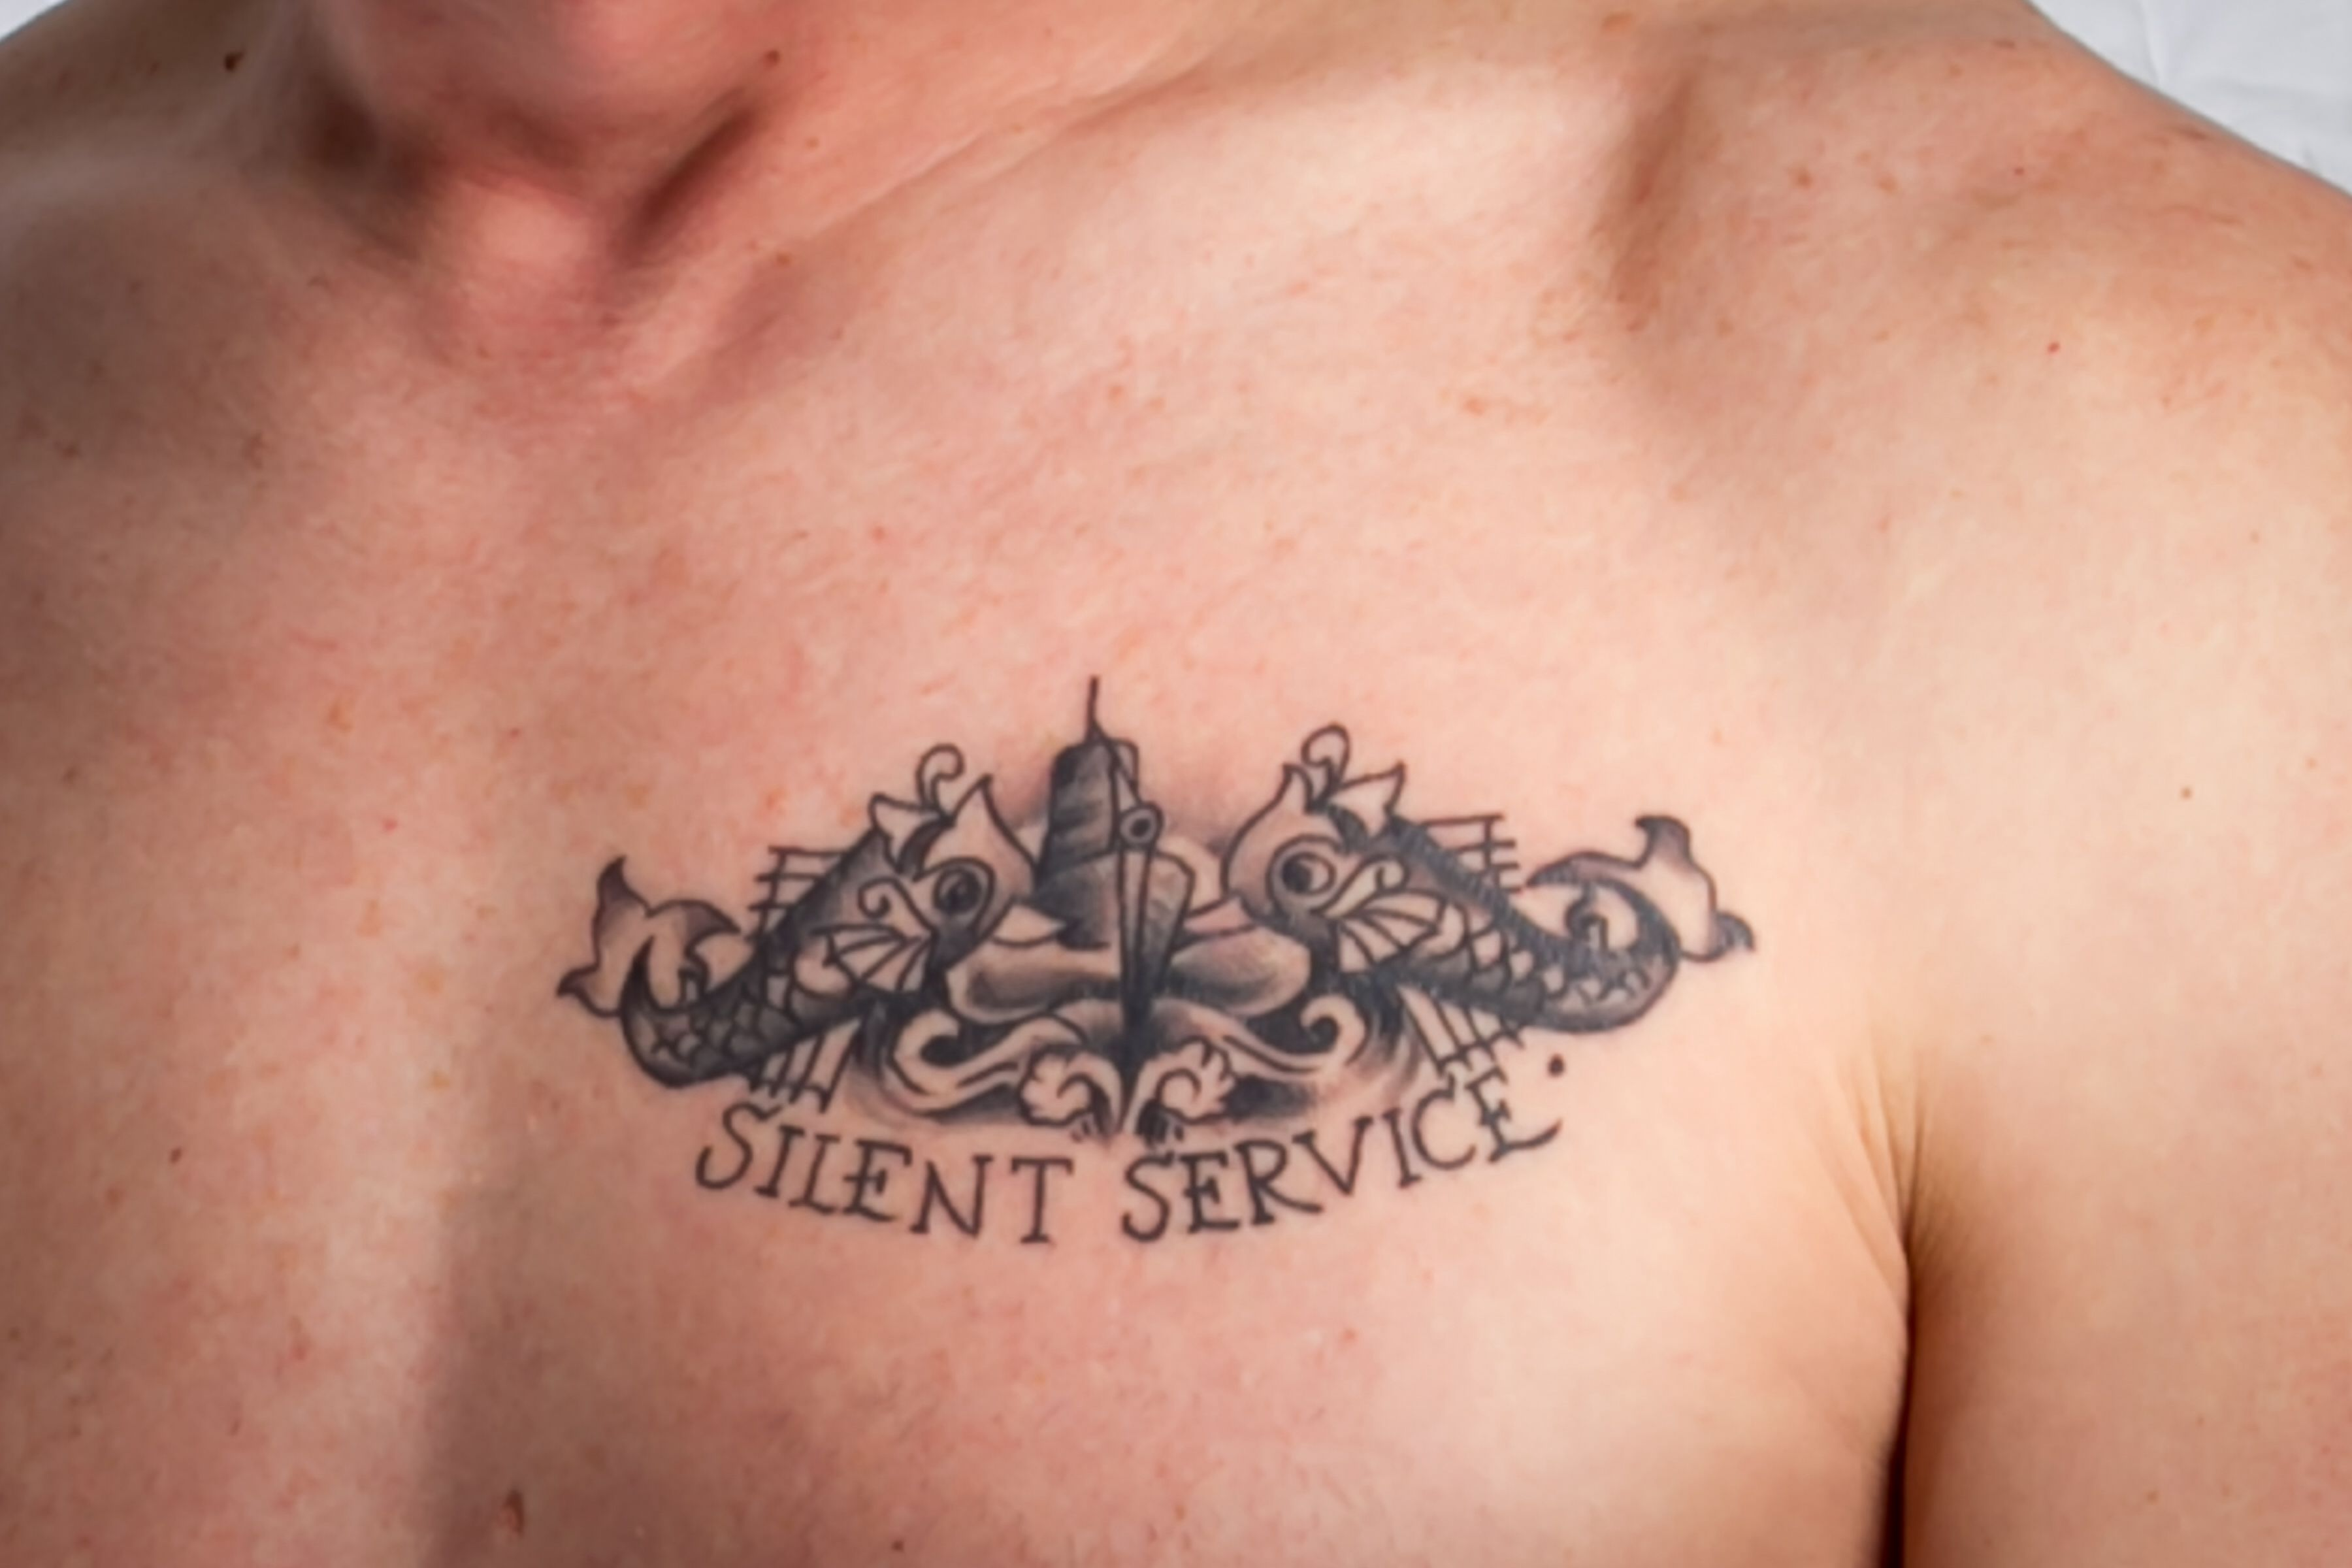 Pin By Damon Burnette On Tattoo Ideas Dolphins Tattoo Tattoos For Guys Tattoos For Women